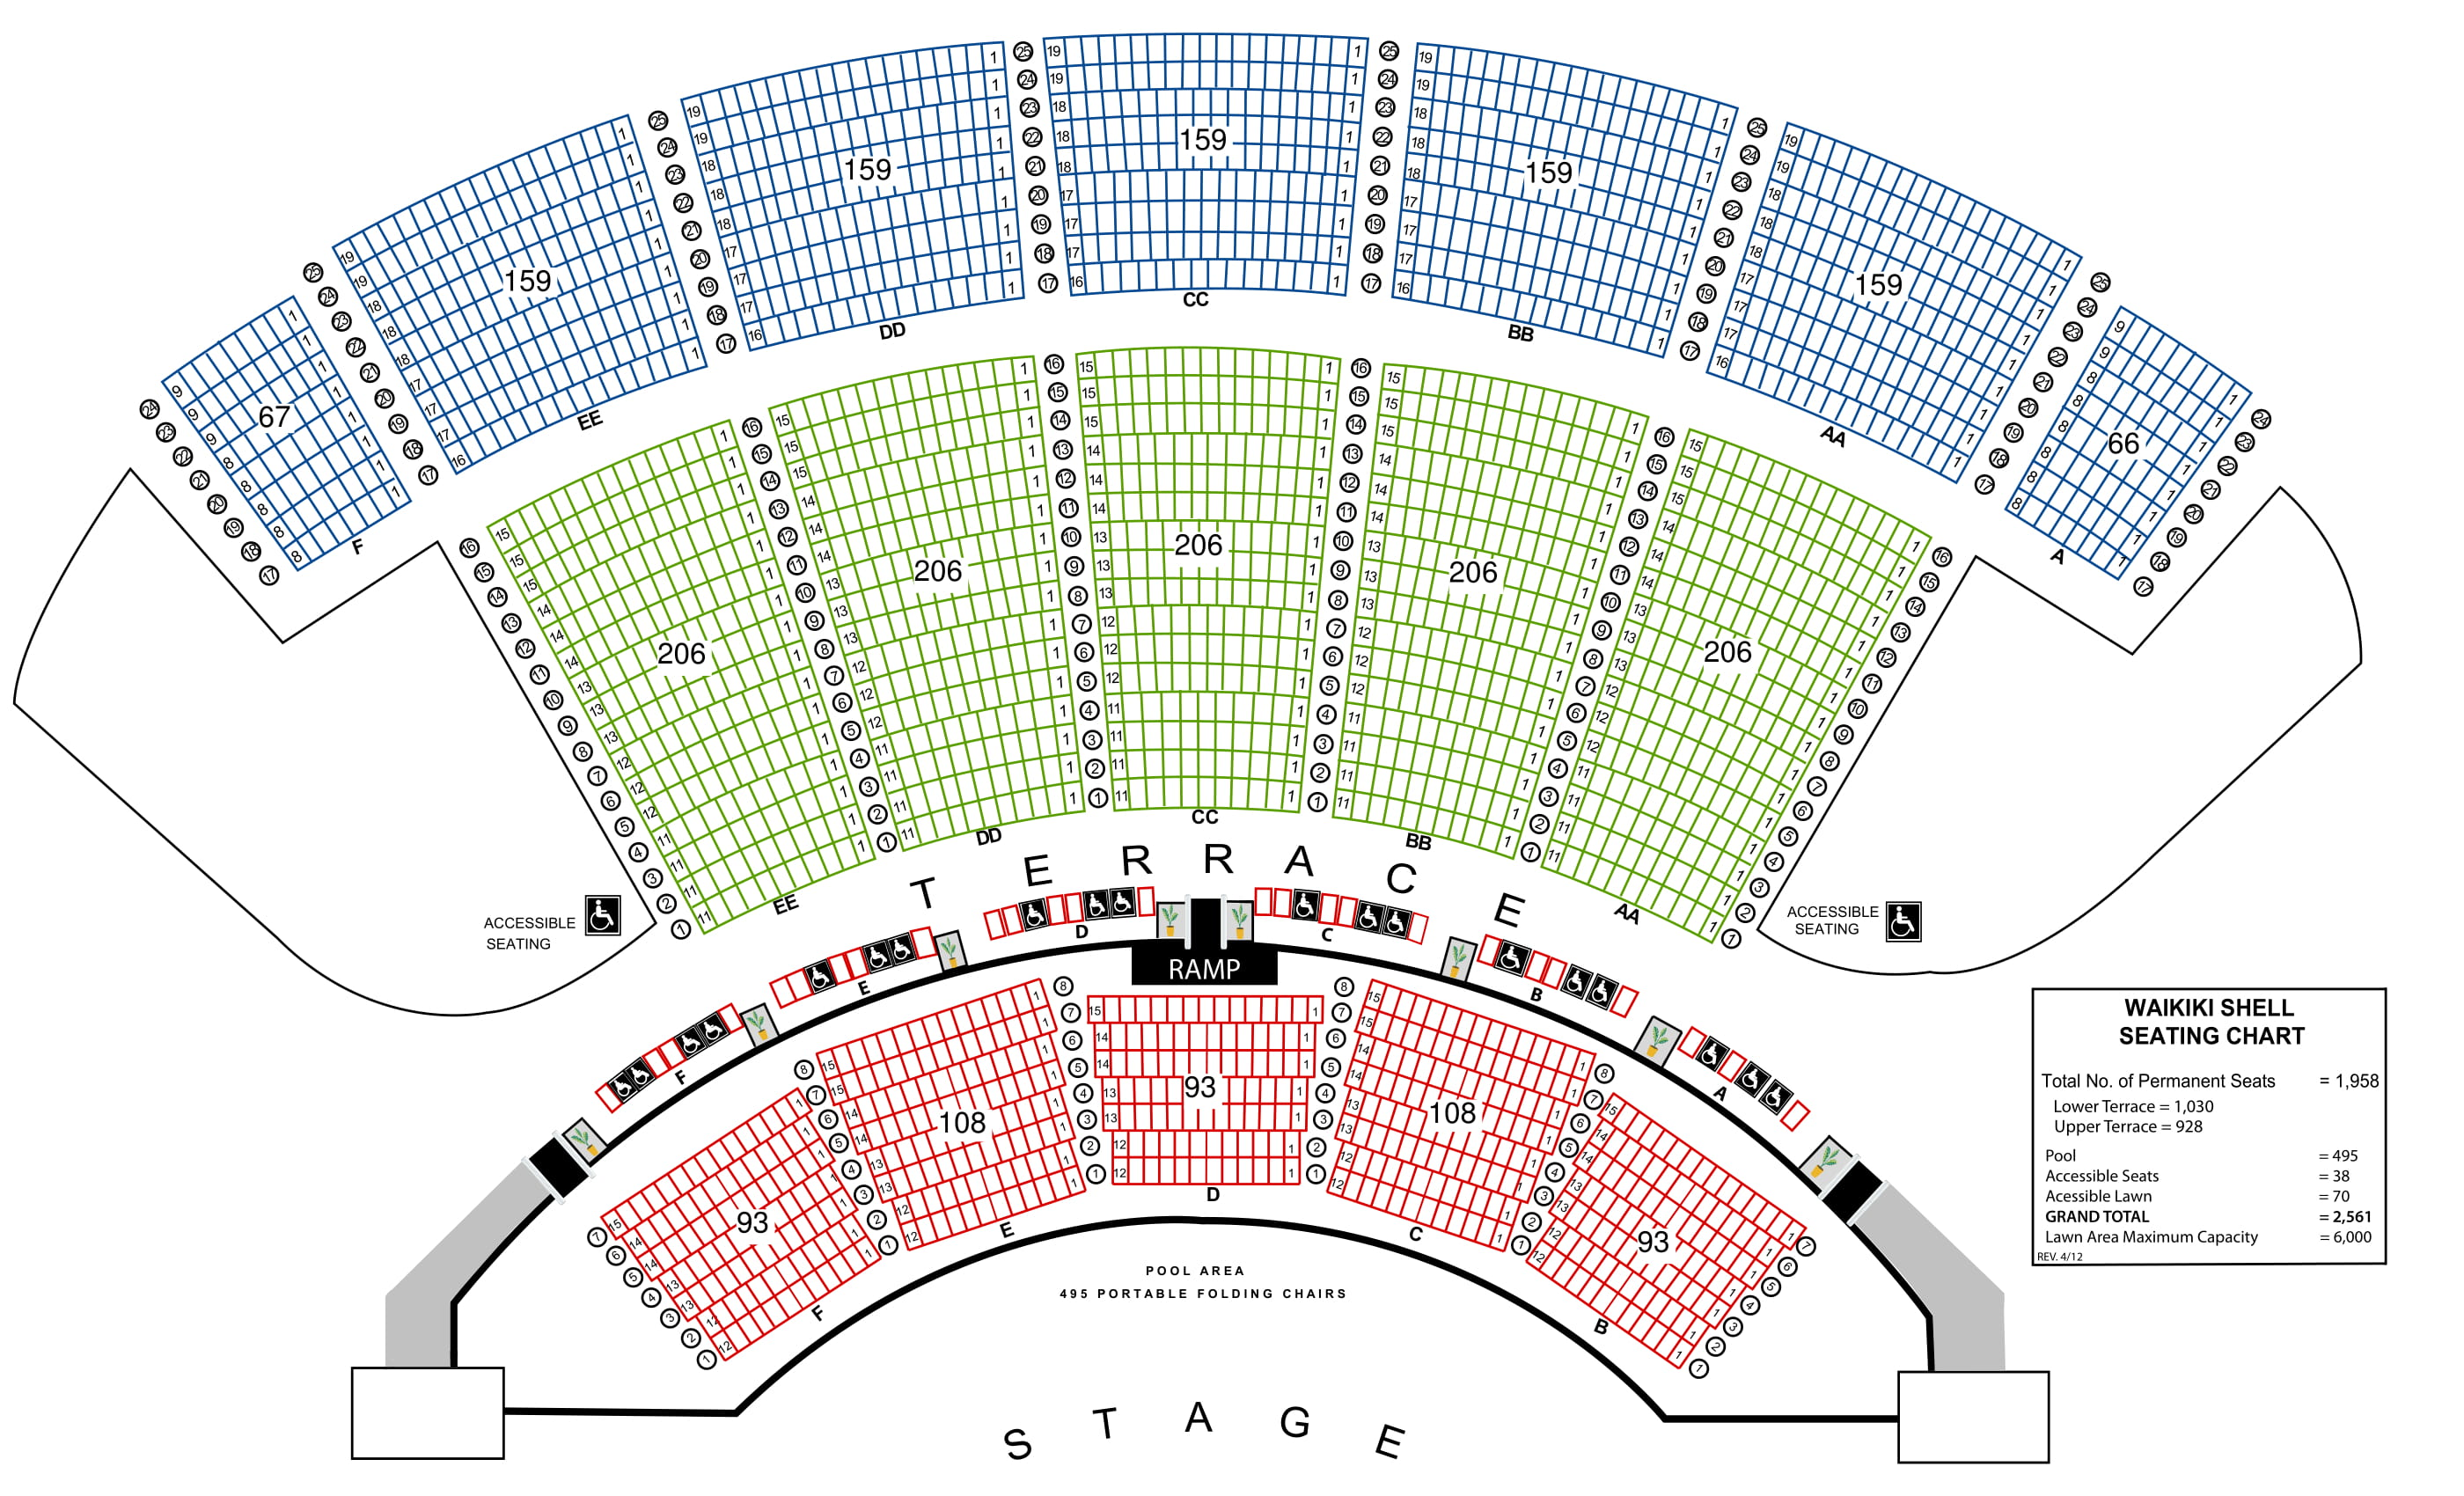 waikiki shell seating map with three different colored sections. blue is the seats at the top of the picture. green are the seats in the center of the picture. and red are the seats in the pool area at the bottom of the page nearest the stage